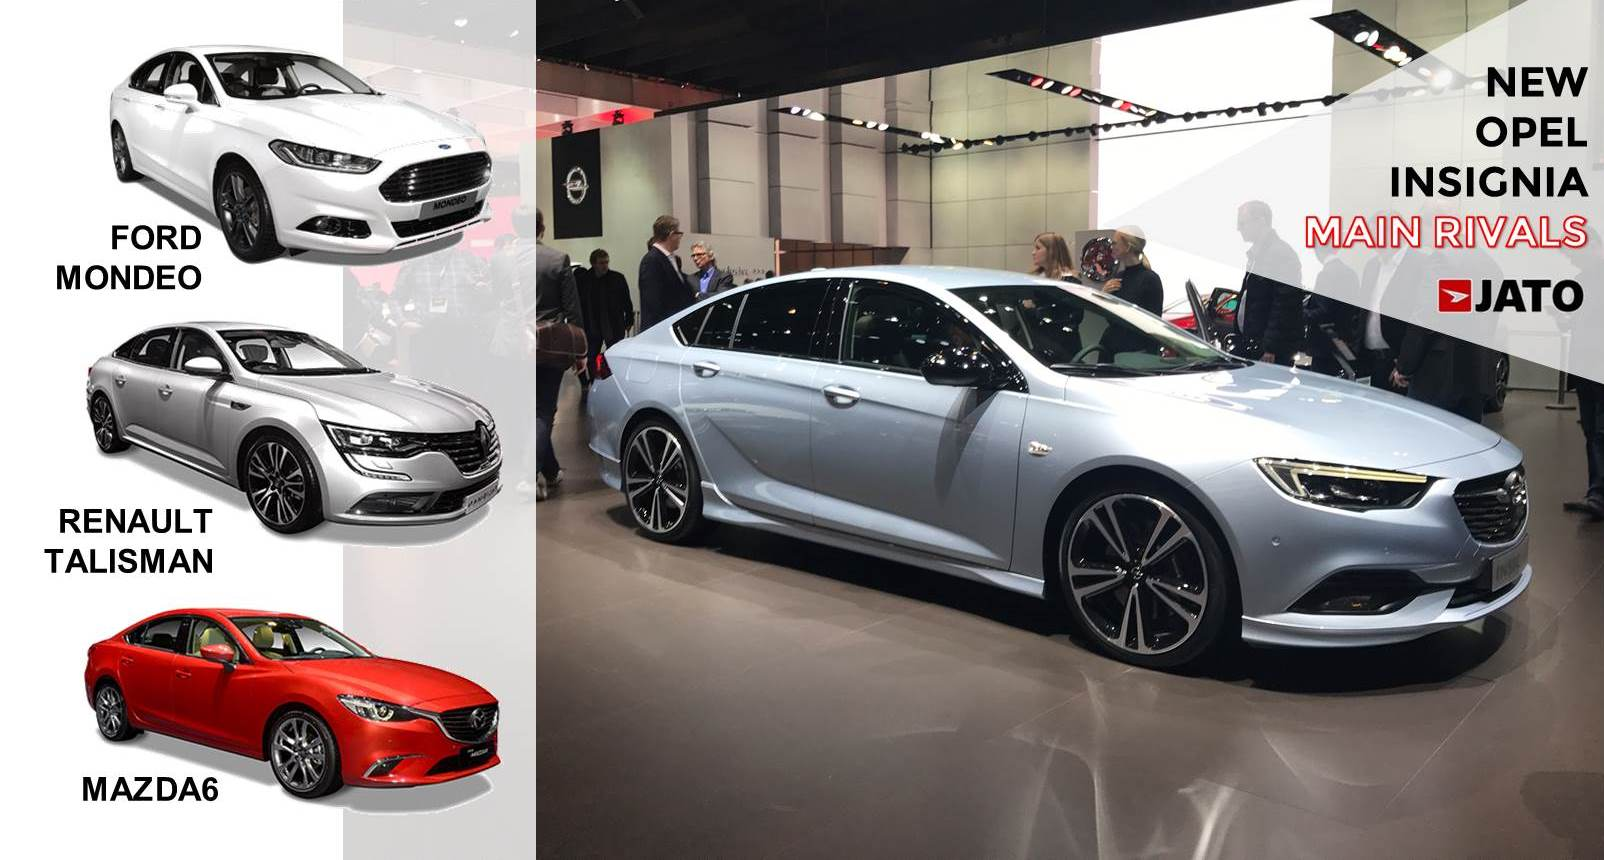 The new Opel Insignia looks sporty and more agressive. With the mainstream midsize sedans/SW demand falling, the brand aims to position the Insignia as a Sporty-Family car. It will remain as the second best-selling mainstream midsize car in Europe, behind the VW Passat.